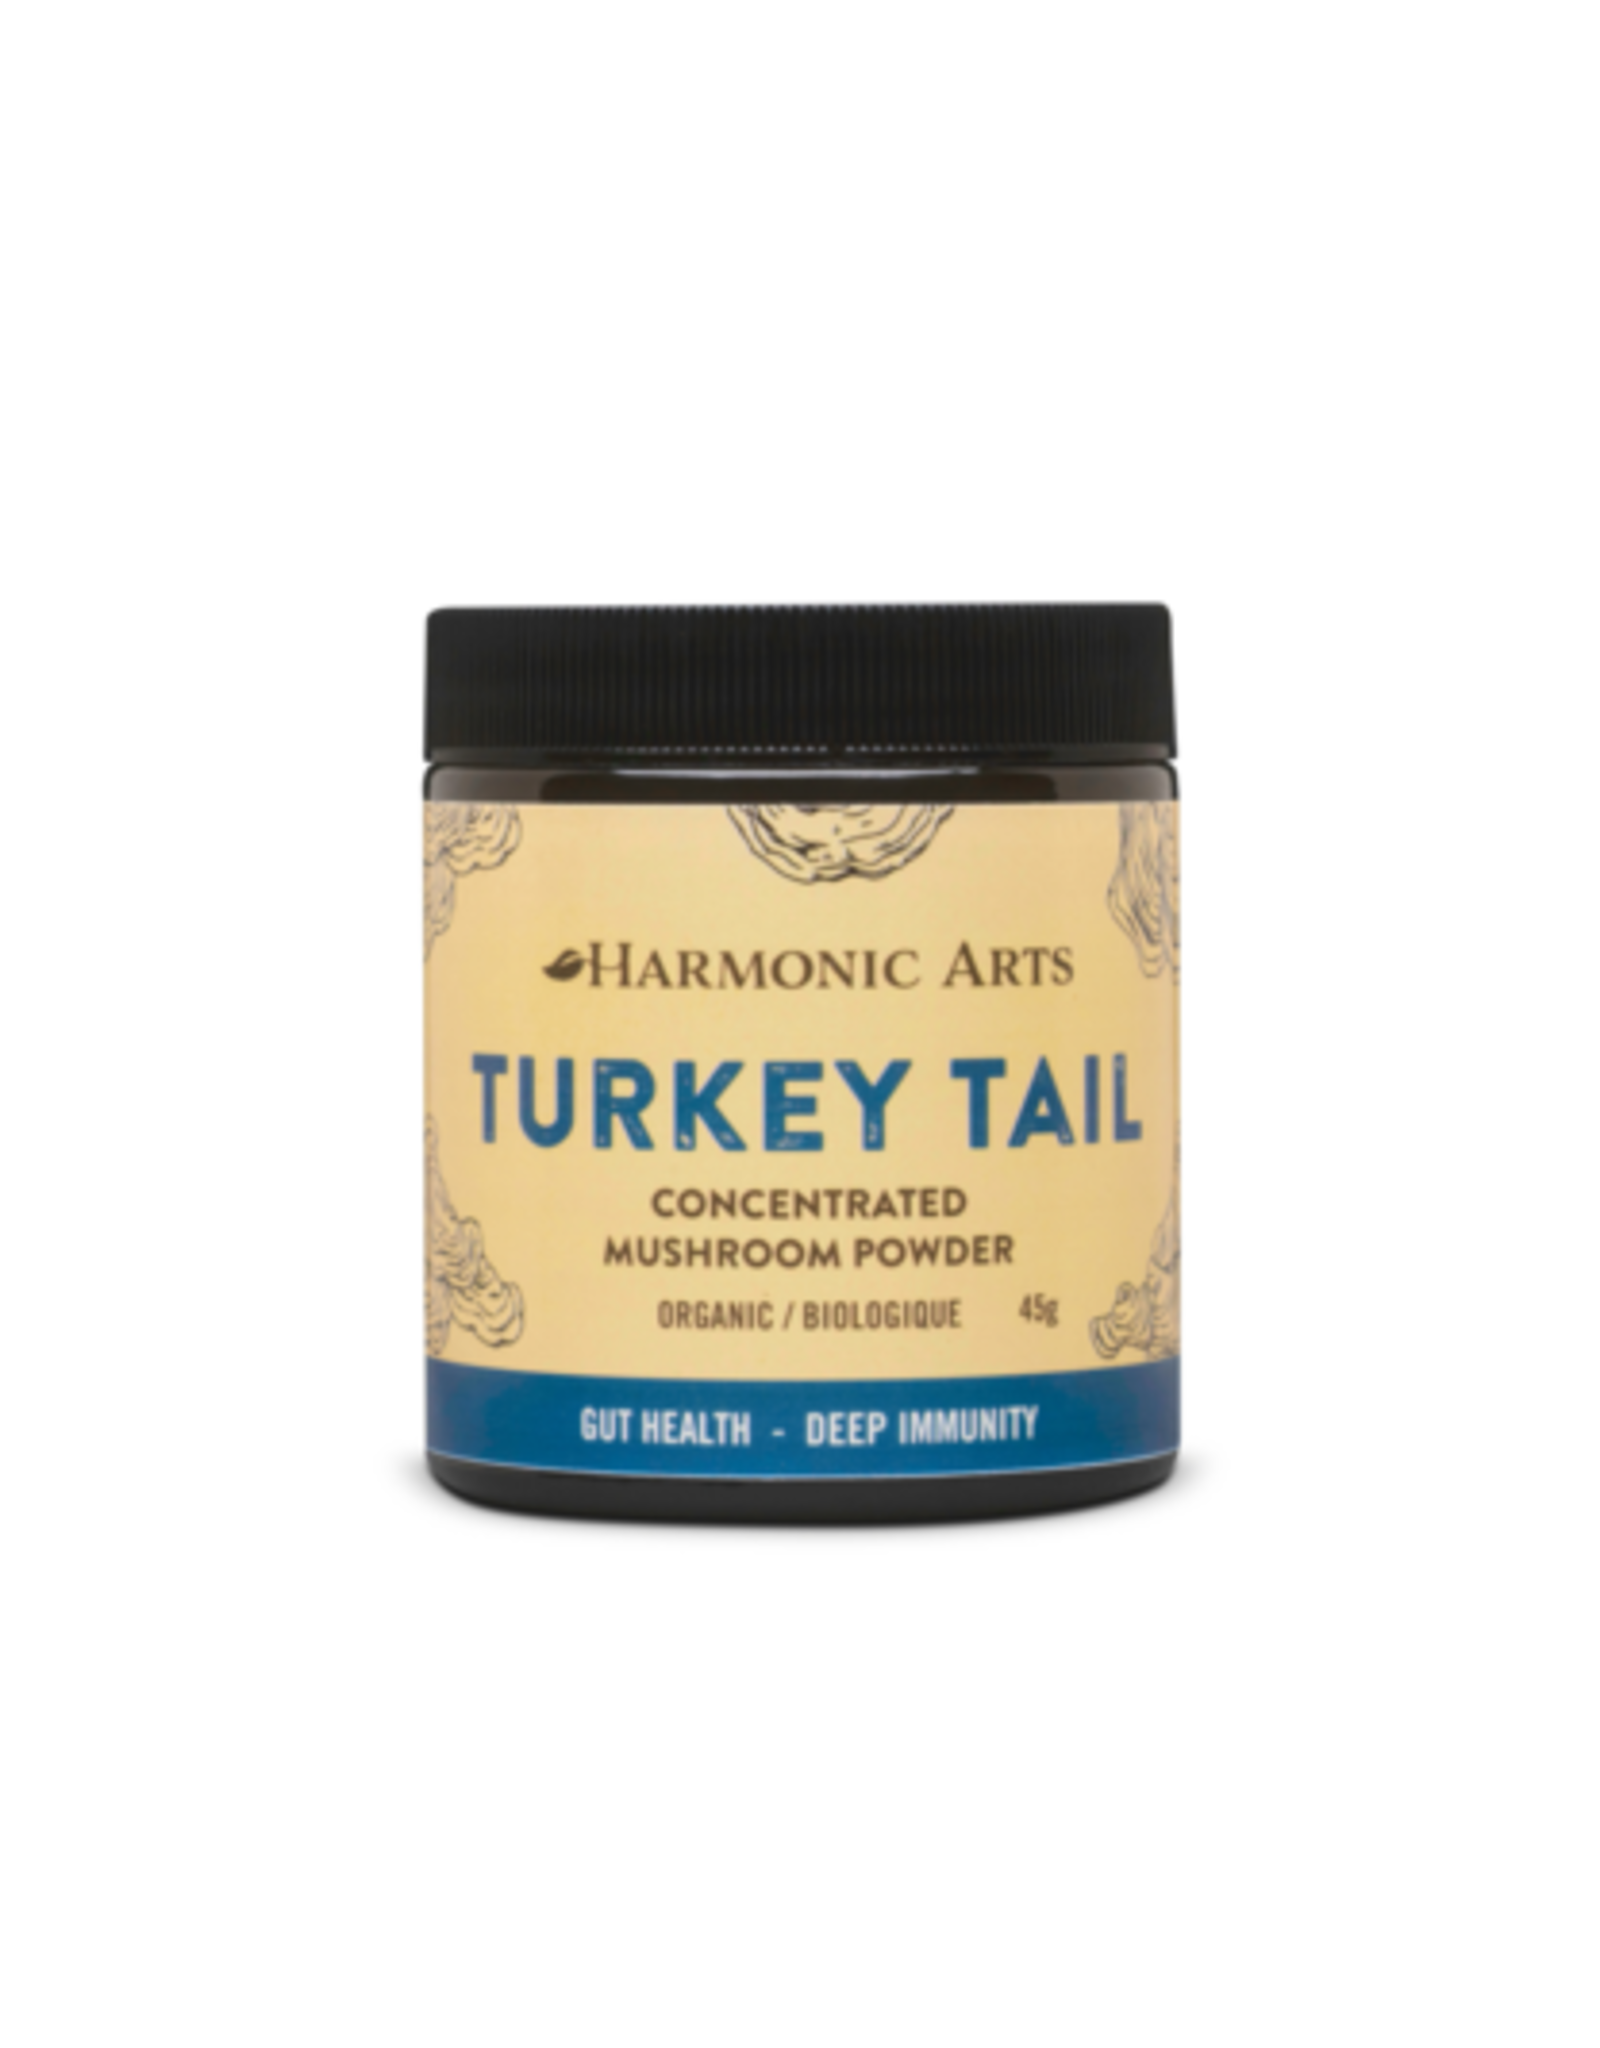 Harmonic Arts Turkey Tail Mushroom Powder